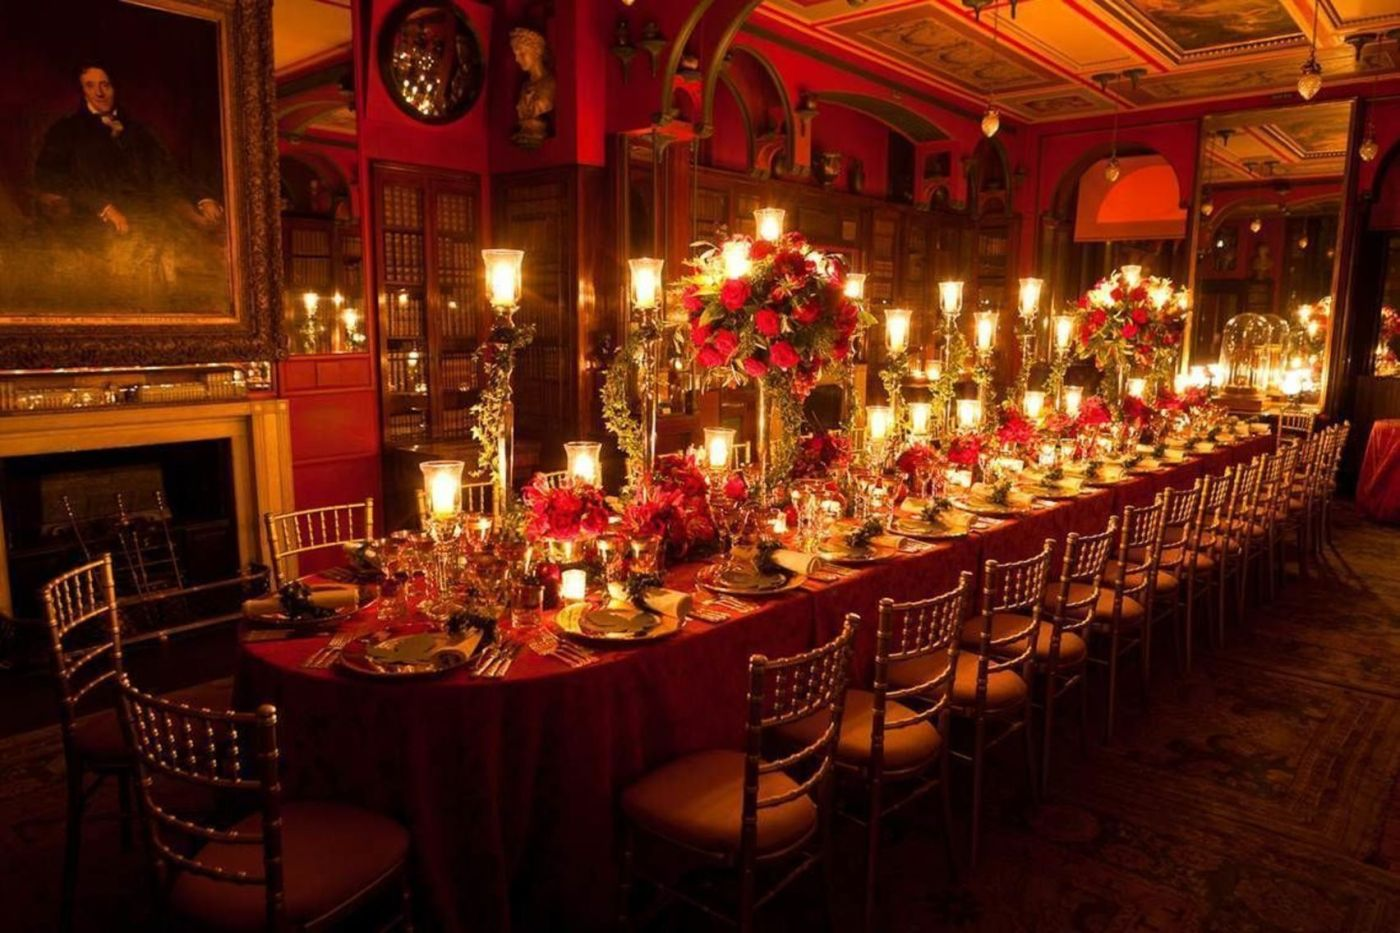 A long private dining table with red lights and large candles. One of the best unique private dining rooms london